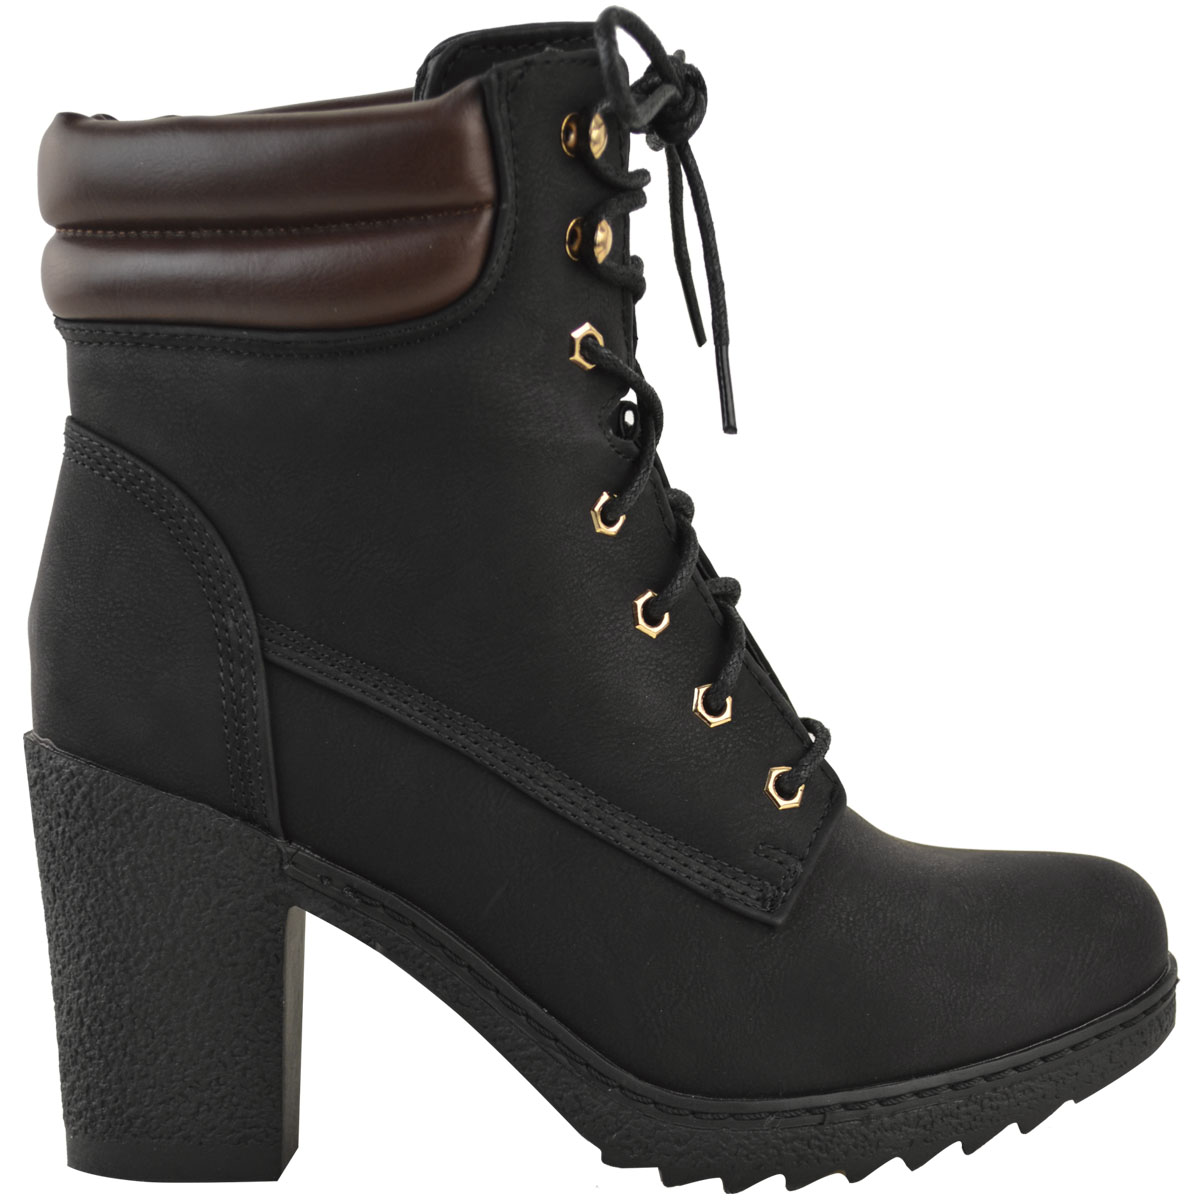 womens ladies ankle boots combat casual lace up grip sole